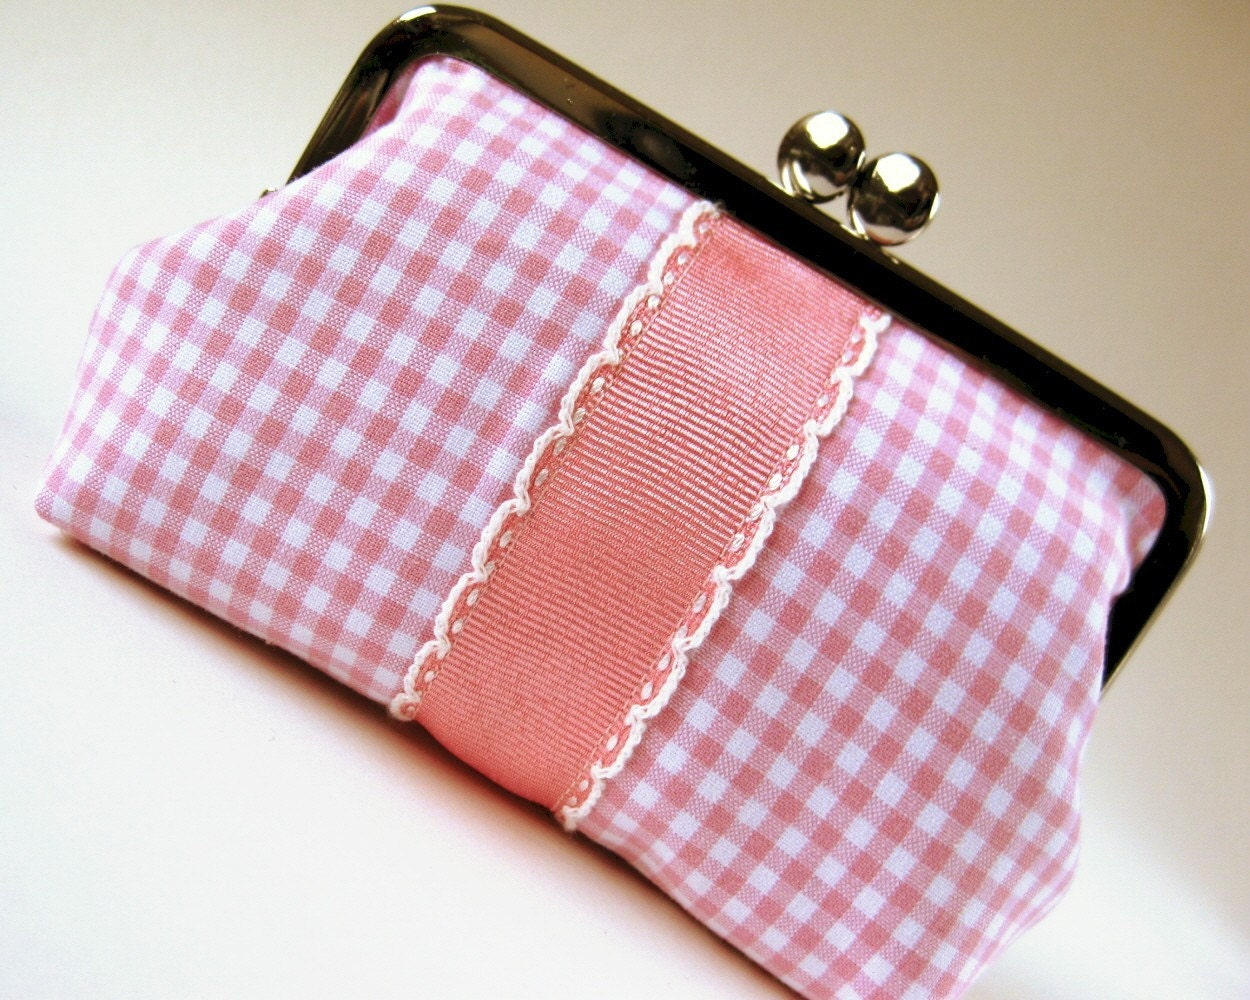 medium frame purse/pouch - scalloped ribbon on pink gingham